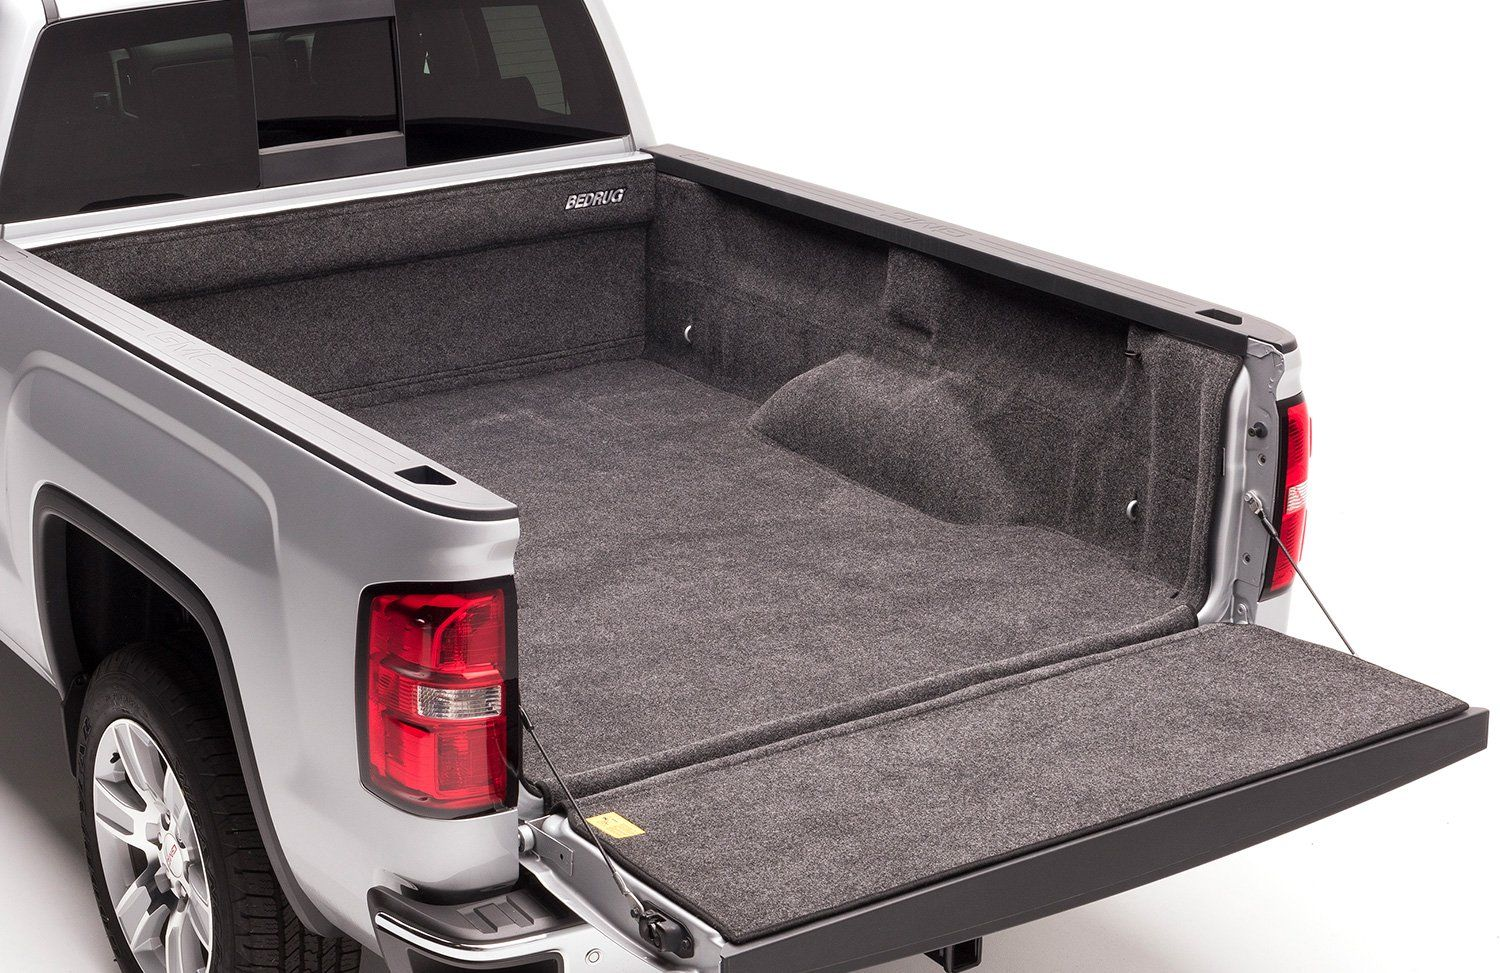 Carpet Truck Bed Liner In 2020 Truck Bed Liner Truck Bed Covers Truck Bed